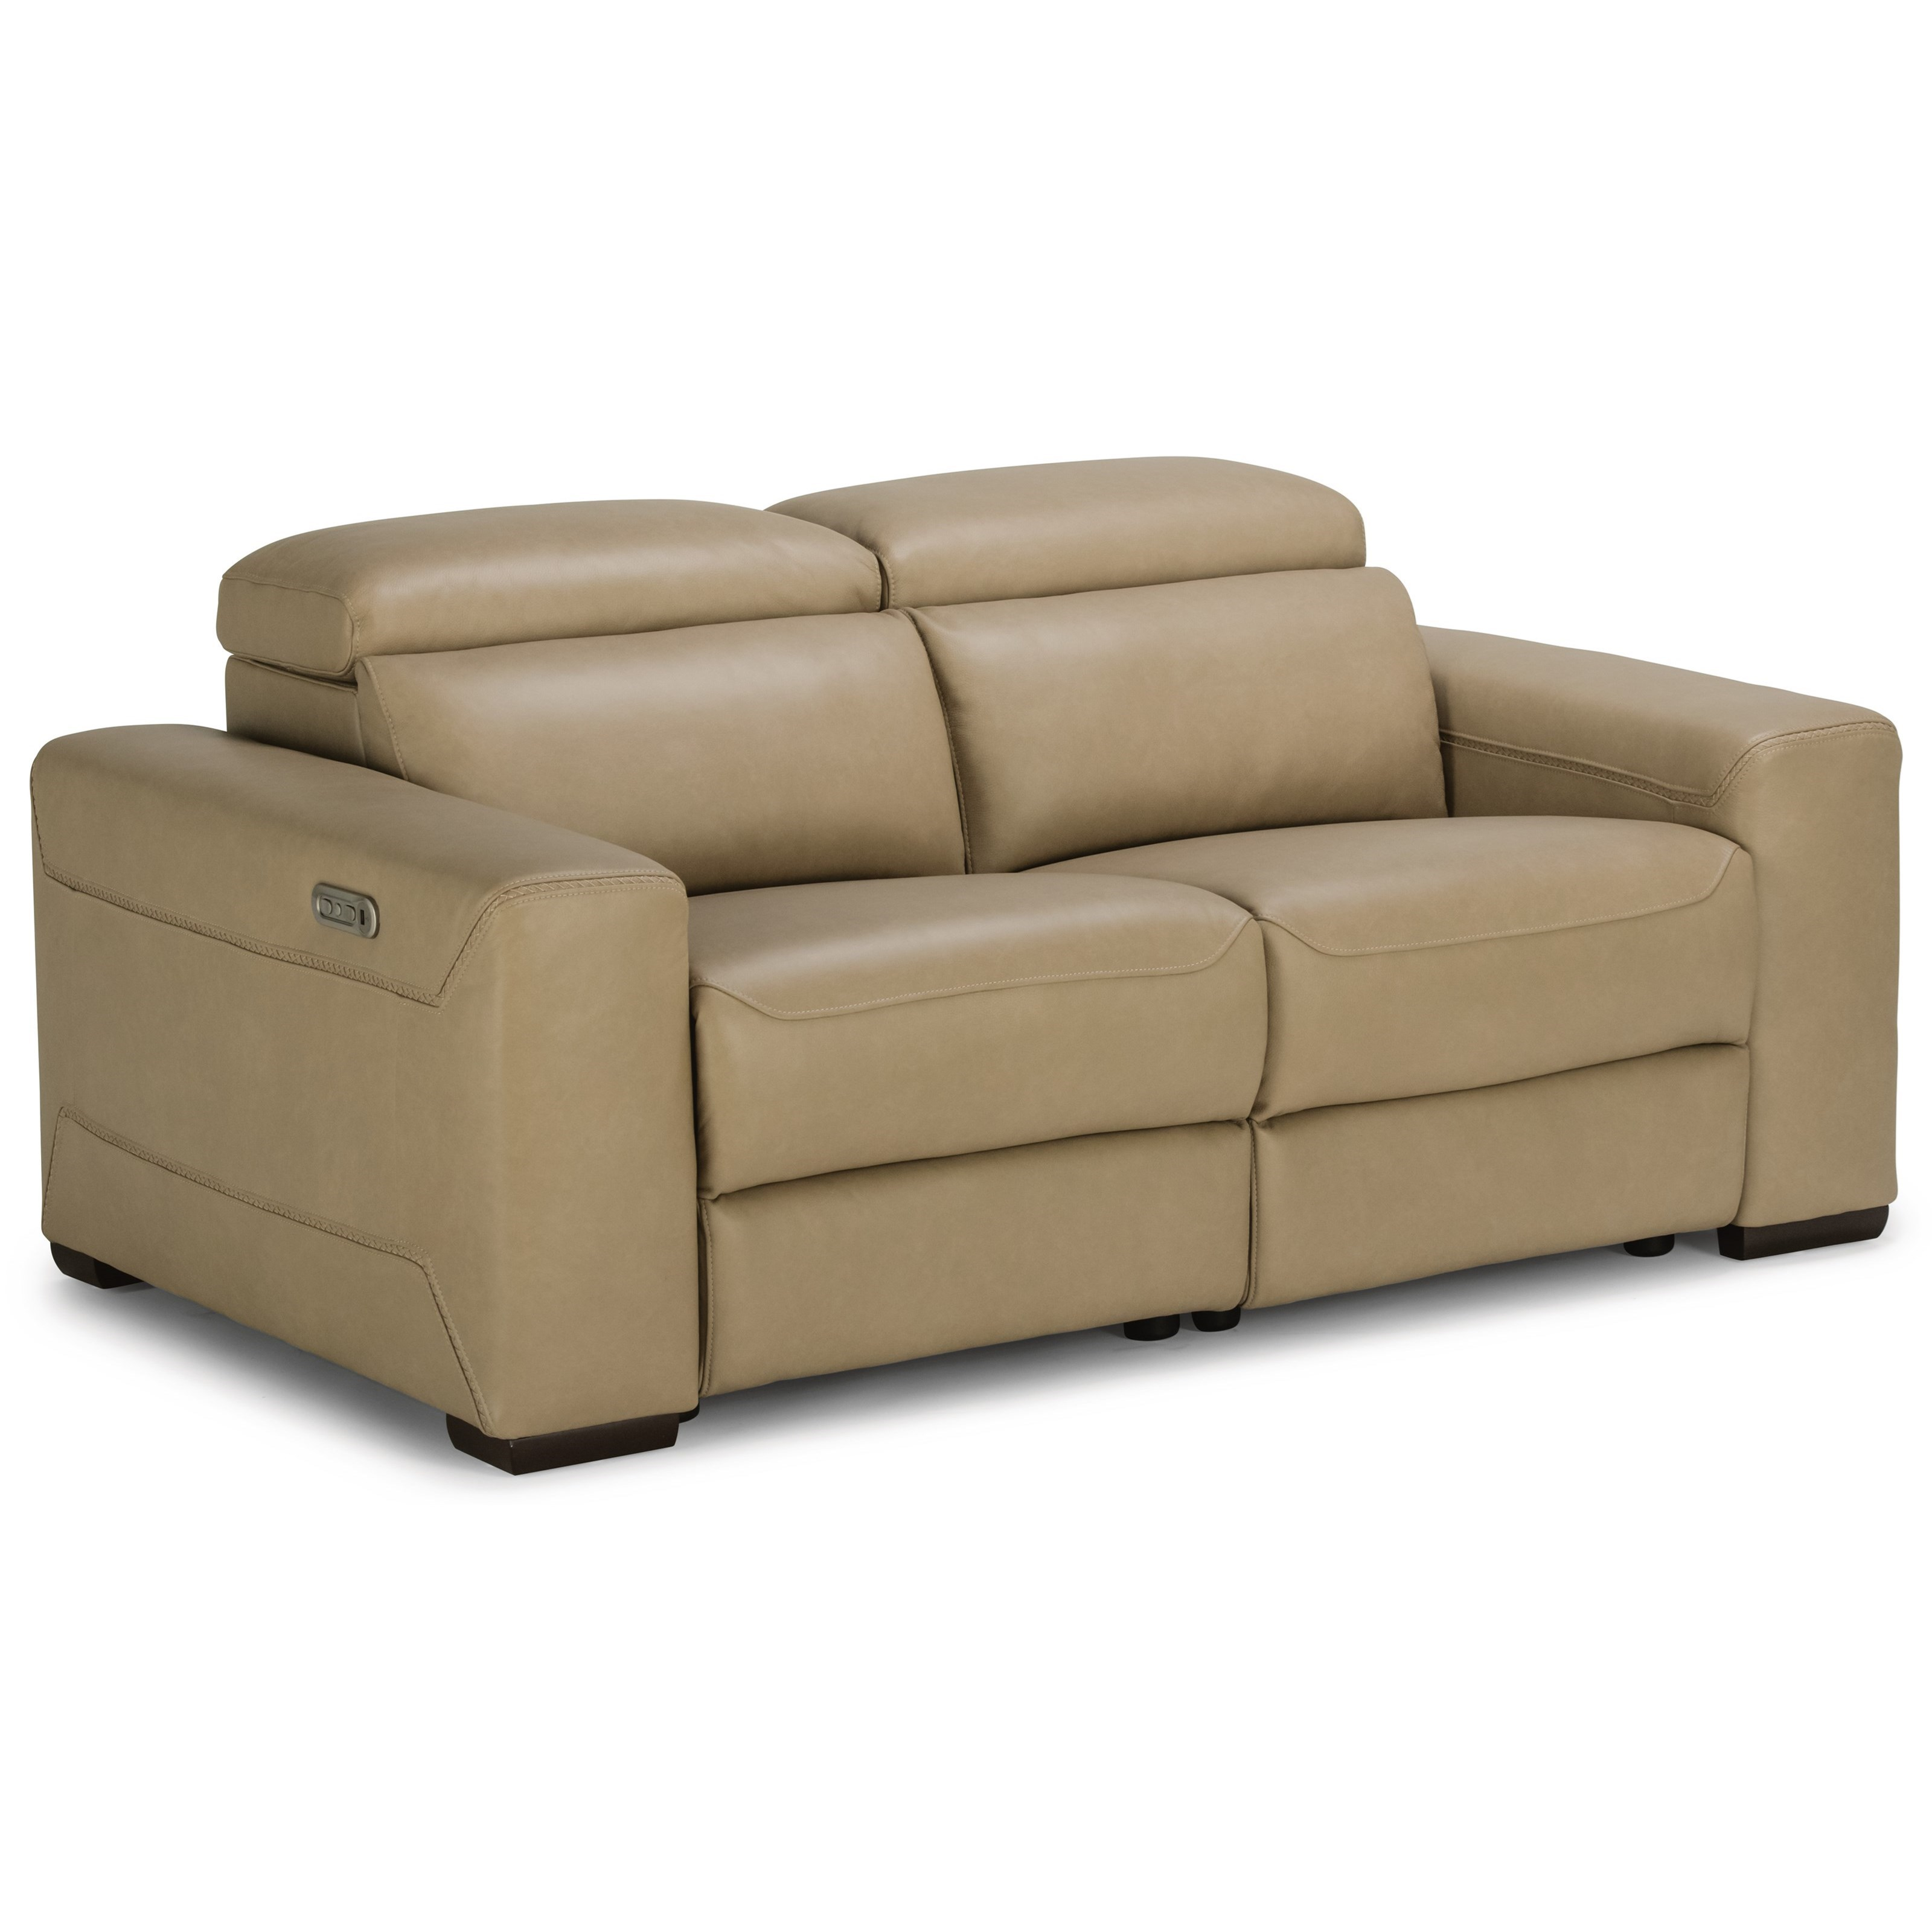 flexsteel reclining sofa warranty leather sofas for small living rooms lexon contemporary sectional love seat